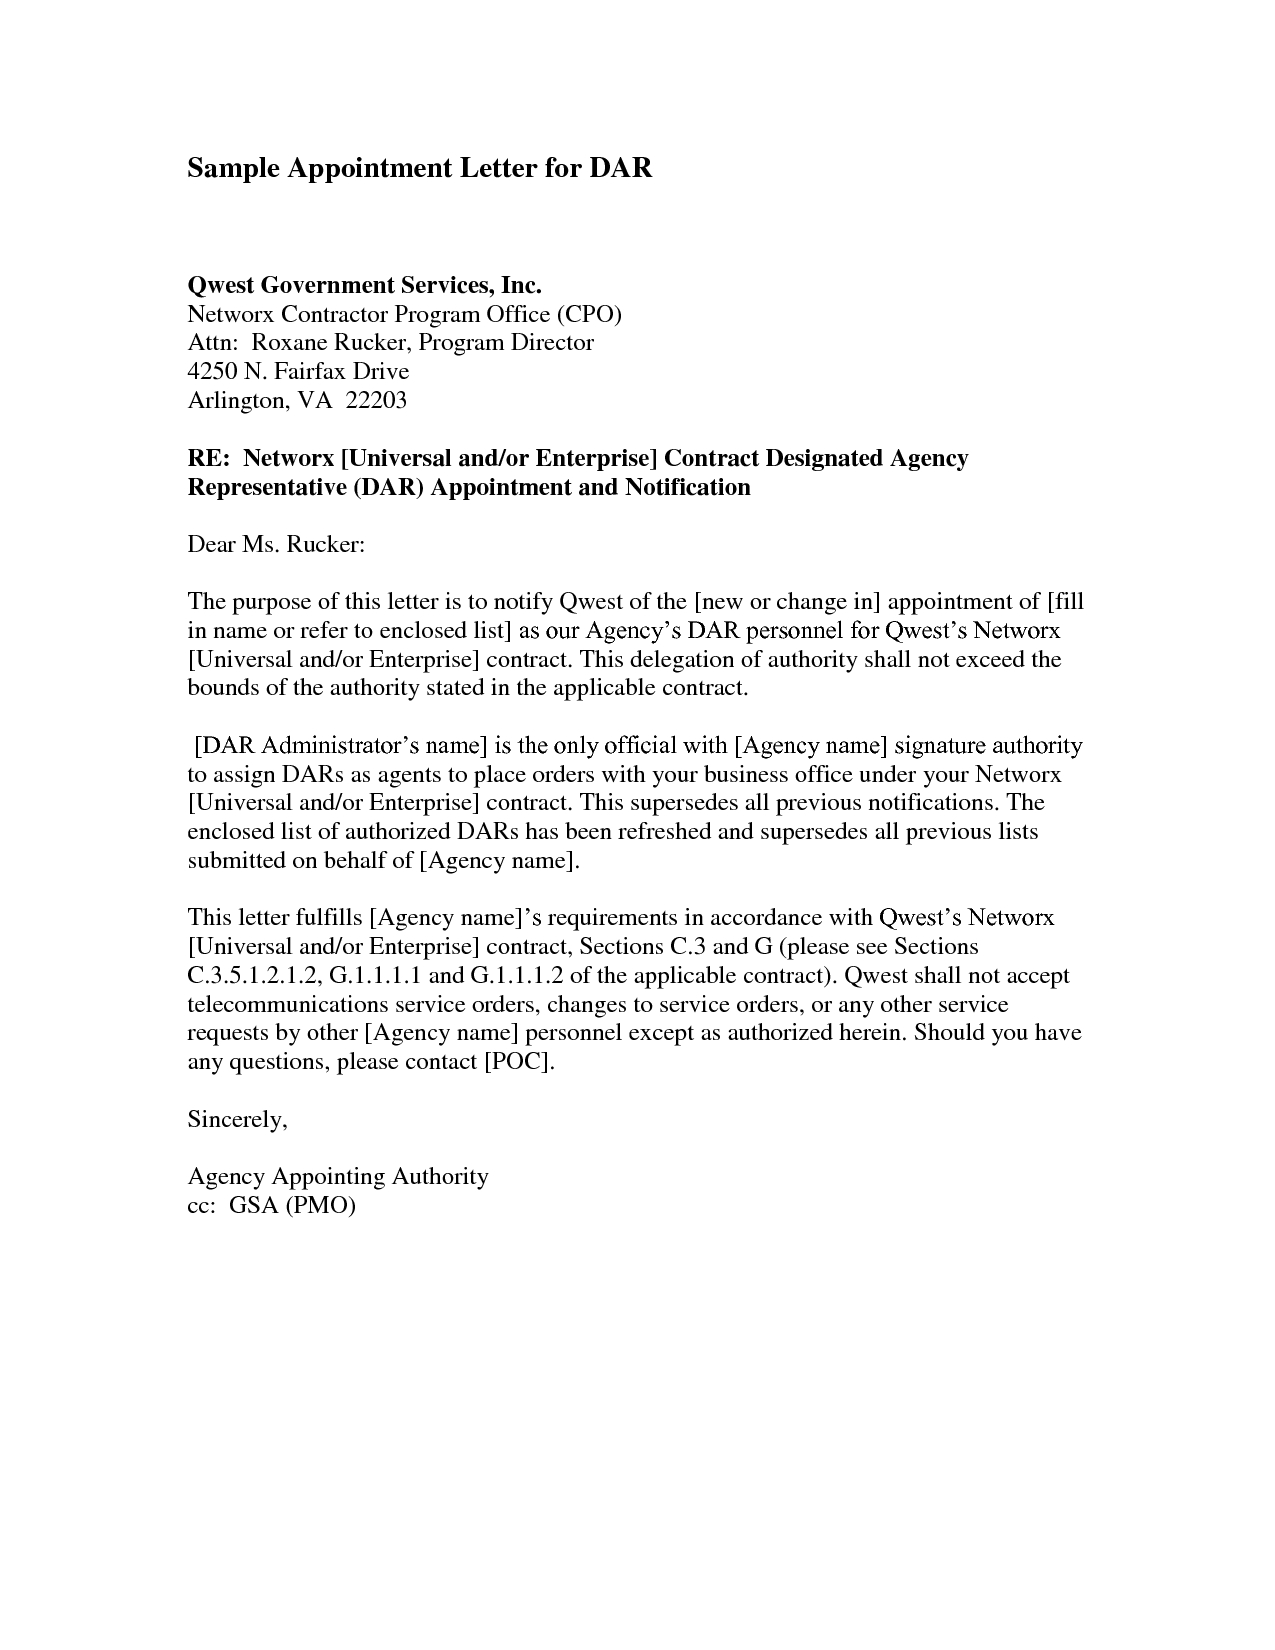 Formal Demand Letter Template Samples Letter Cover Templates